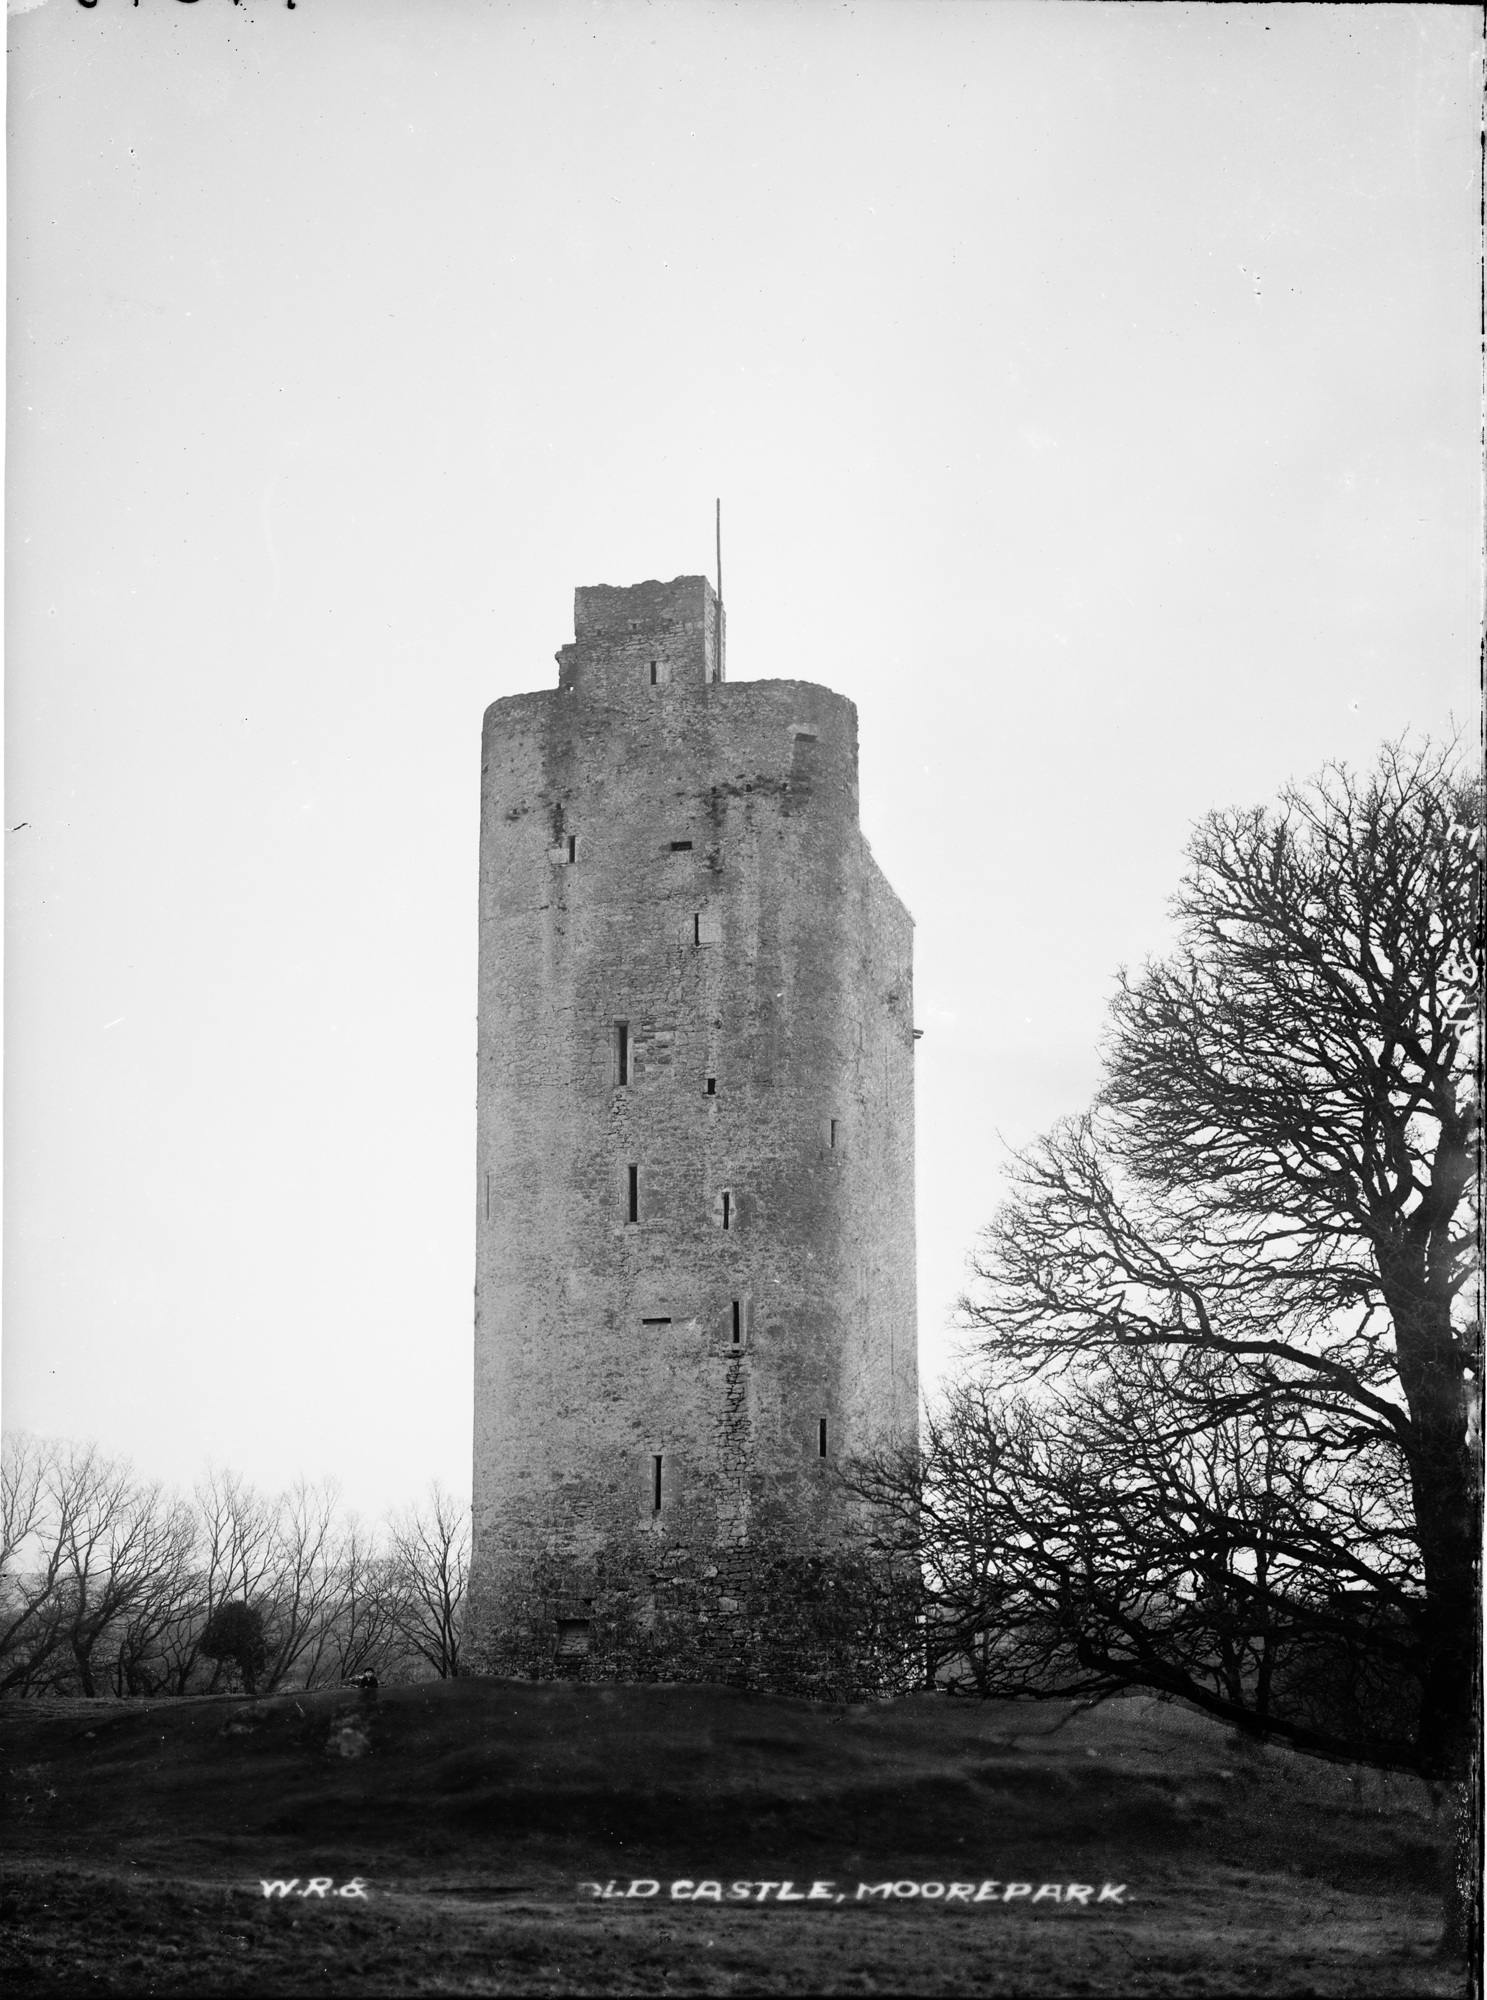 Cloghleigh Castle, Moorepark, Fermoy, Co. Cork